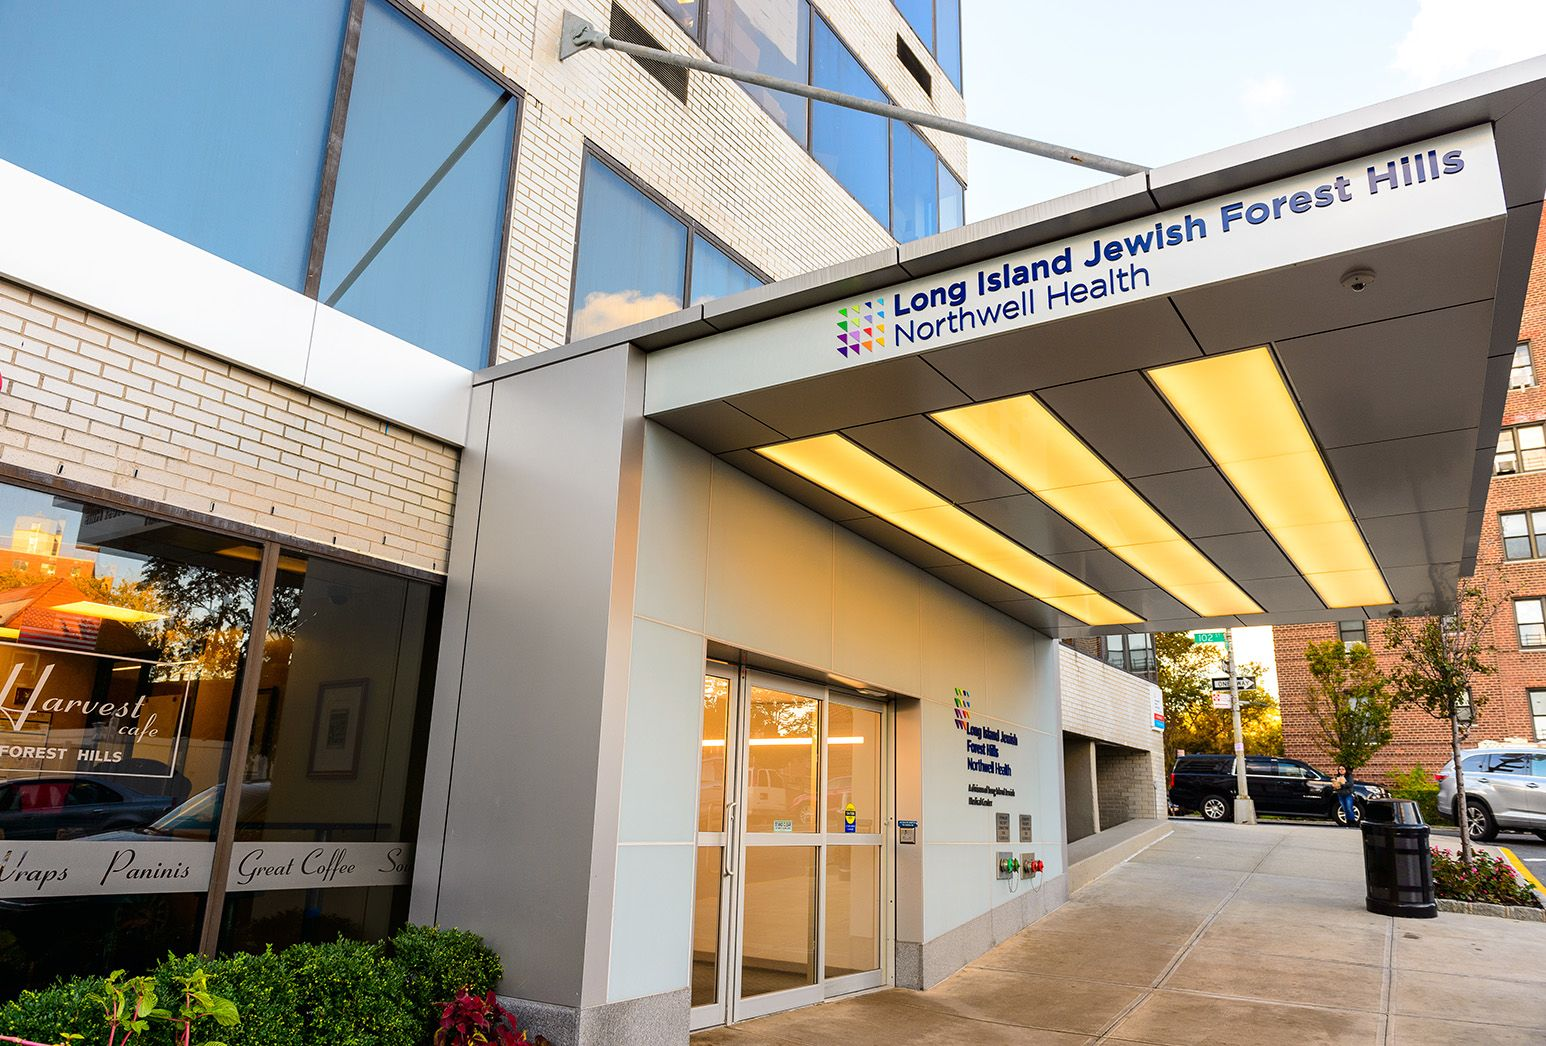 Entrance to Long Island Jewish Forest Hills Hospital